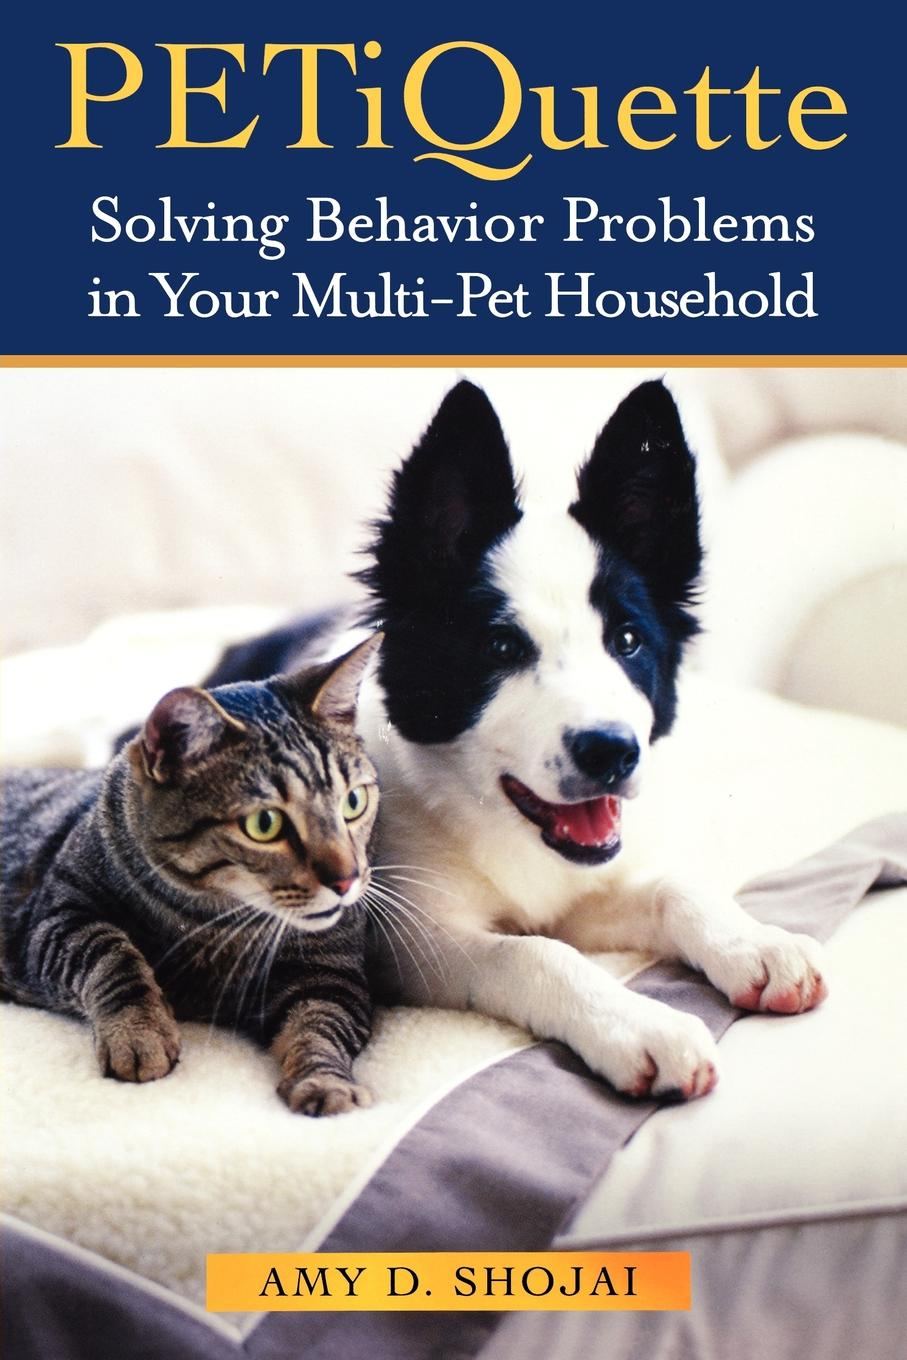 PETiquette: Solving Behavior Problems in Your Multi-Pet Household By: Amy D. Shojai